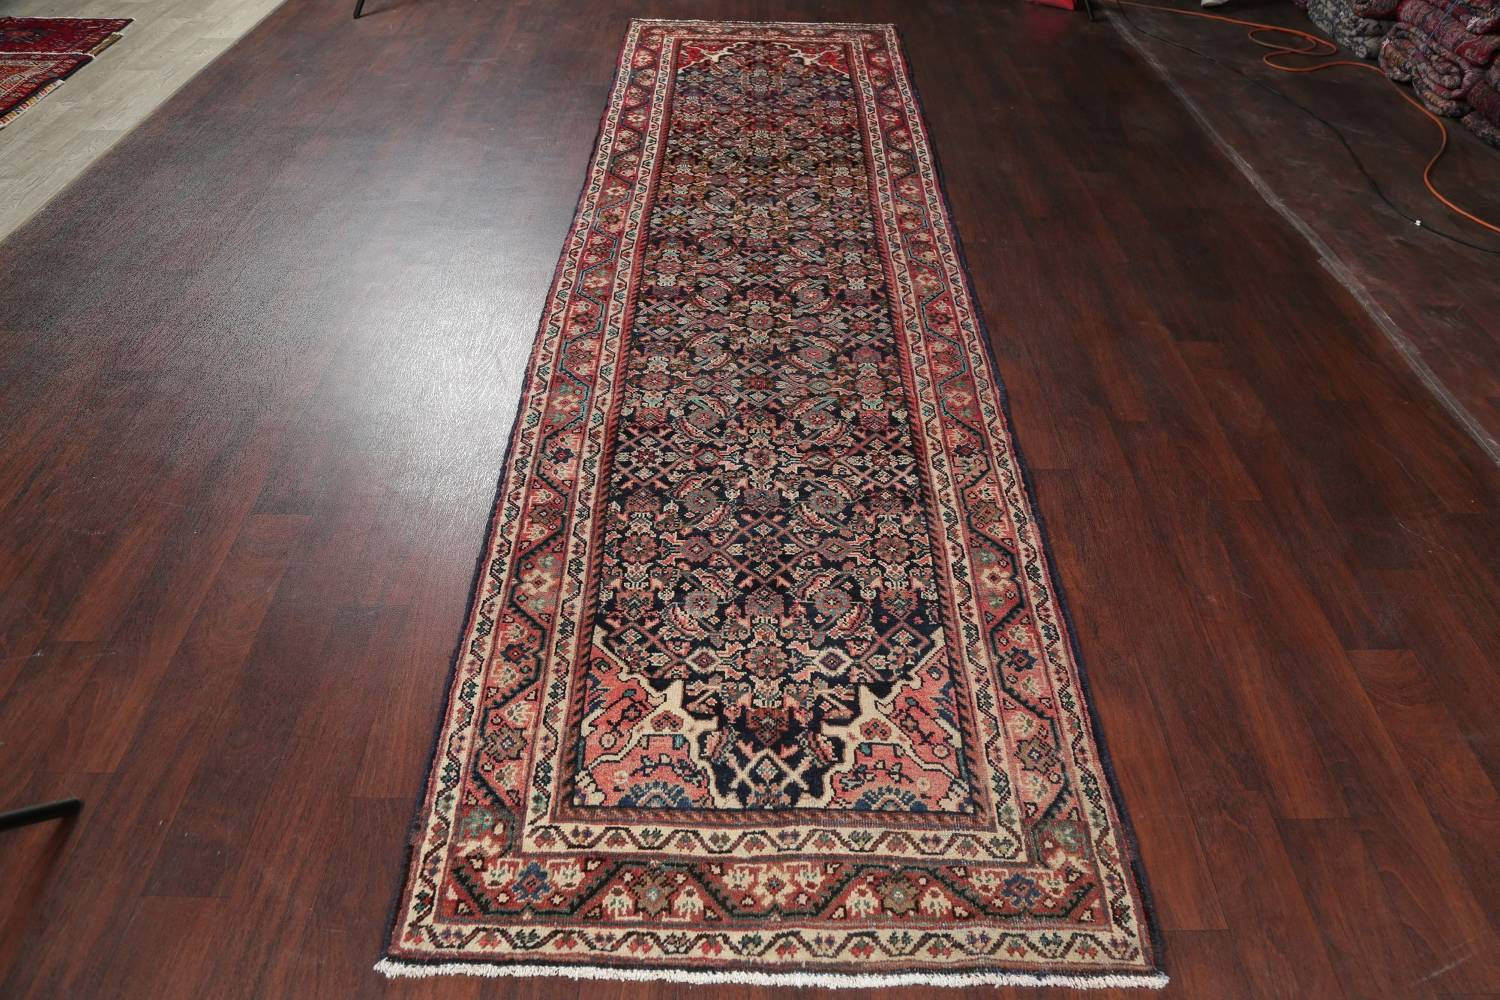 Antique Geometric Mahal Hamedan Persian Hand-Knotted 4x13 Runner Rug image 13